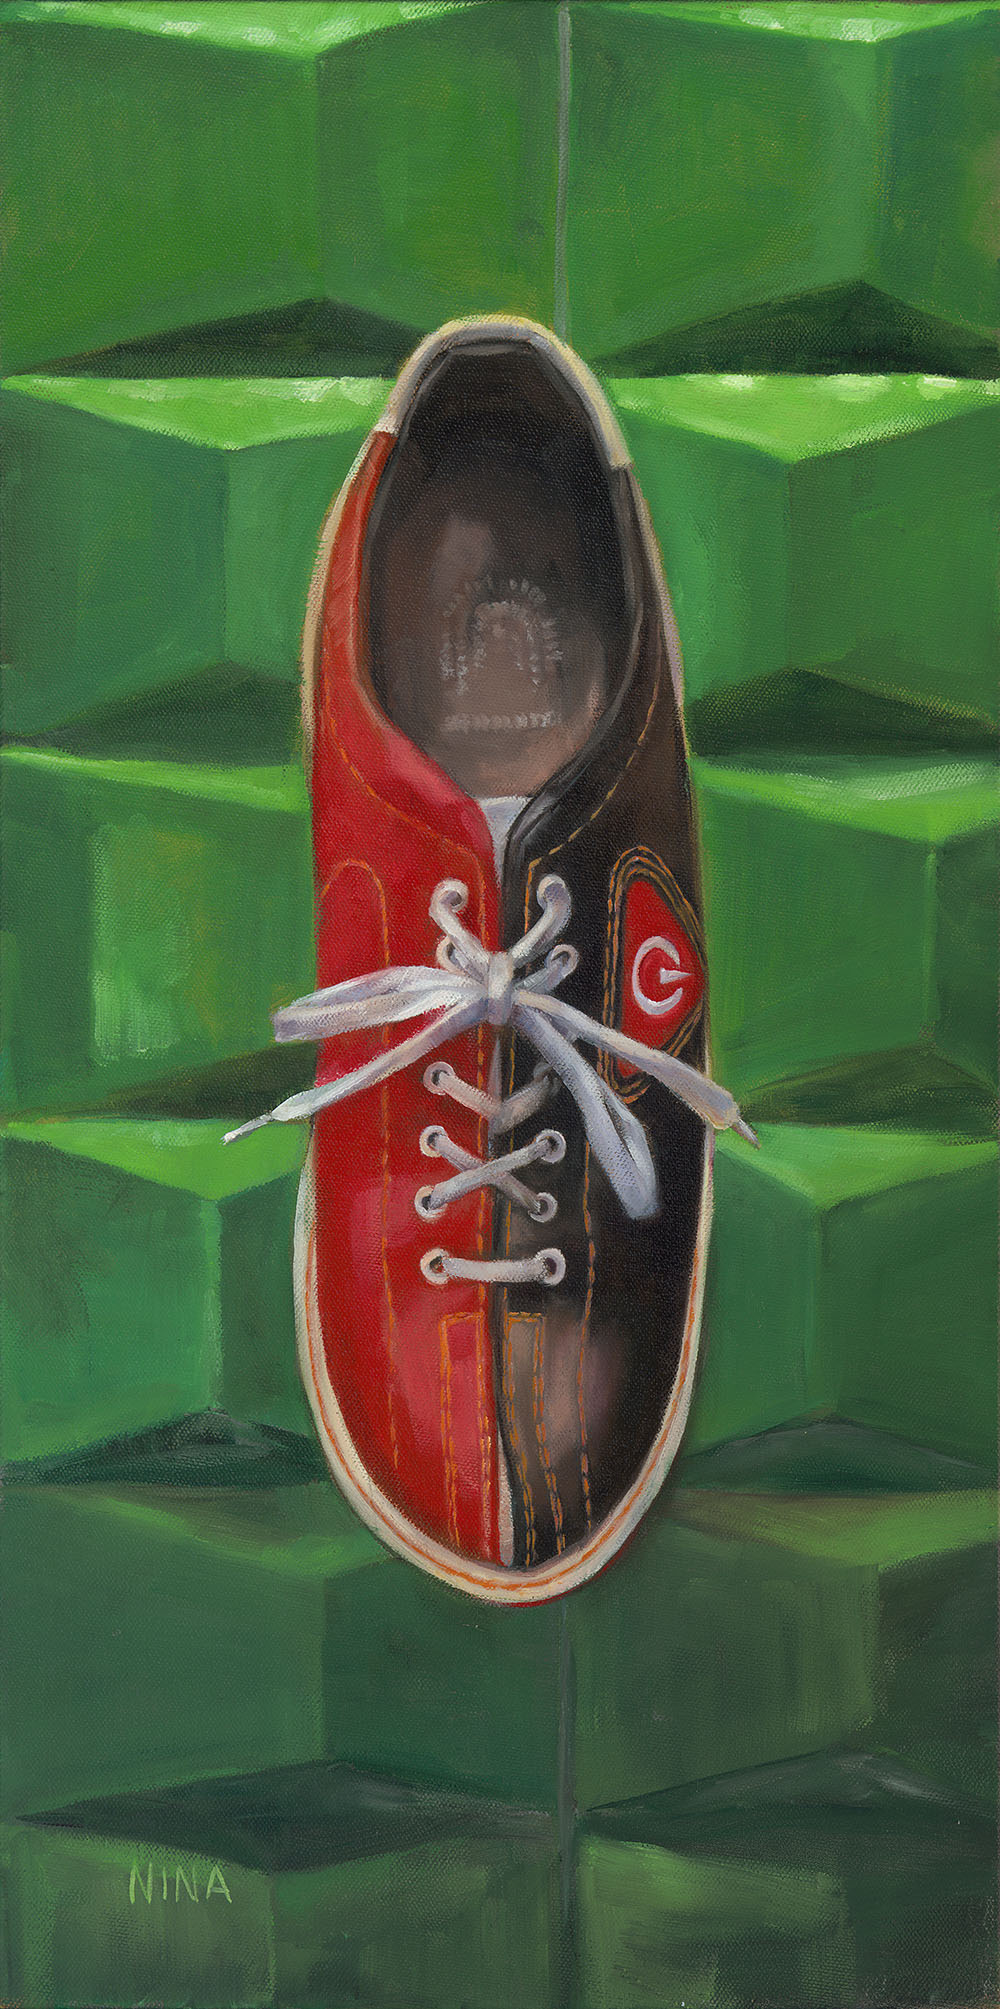 Painting of a big bowling shoe.